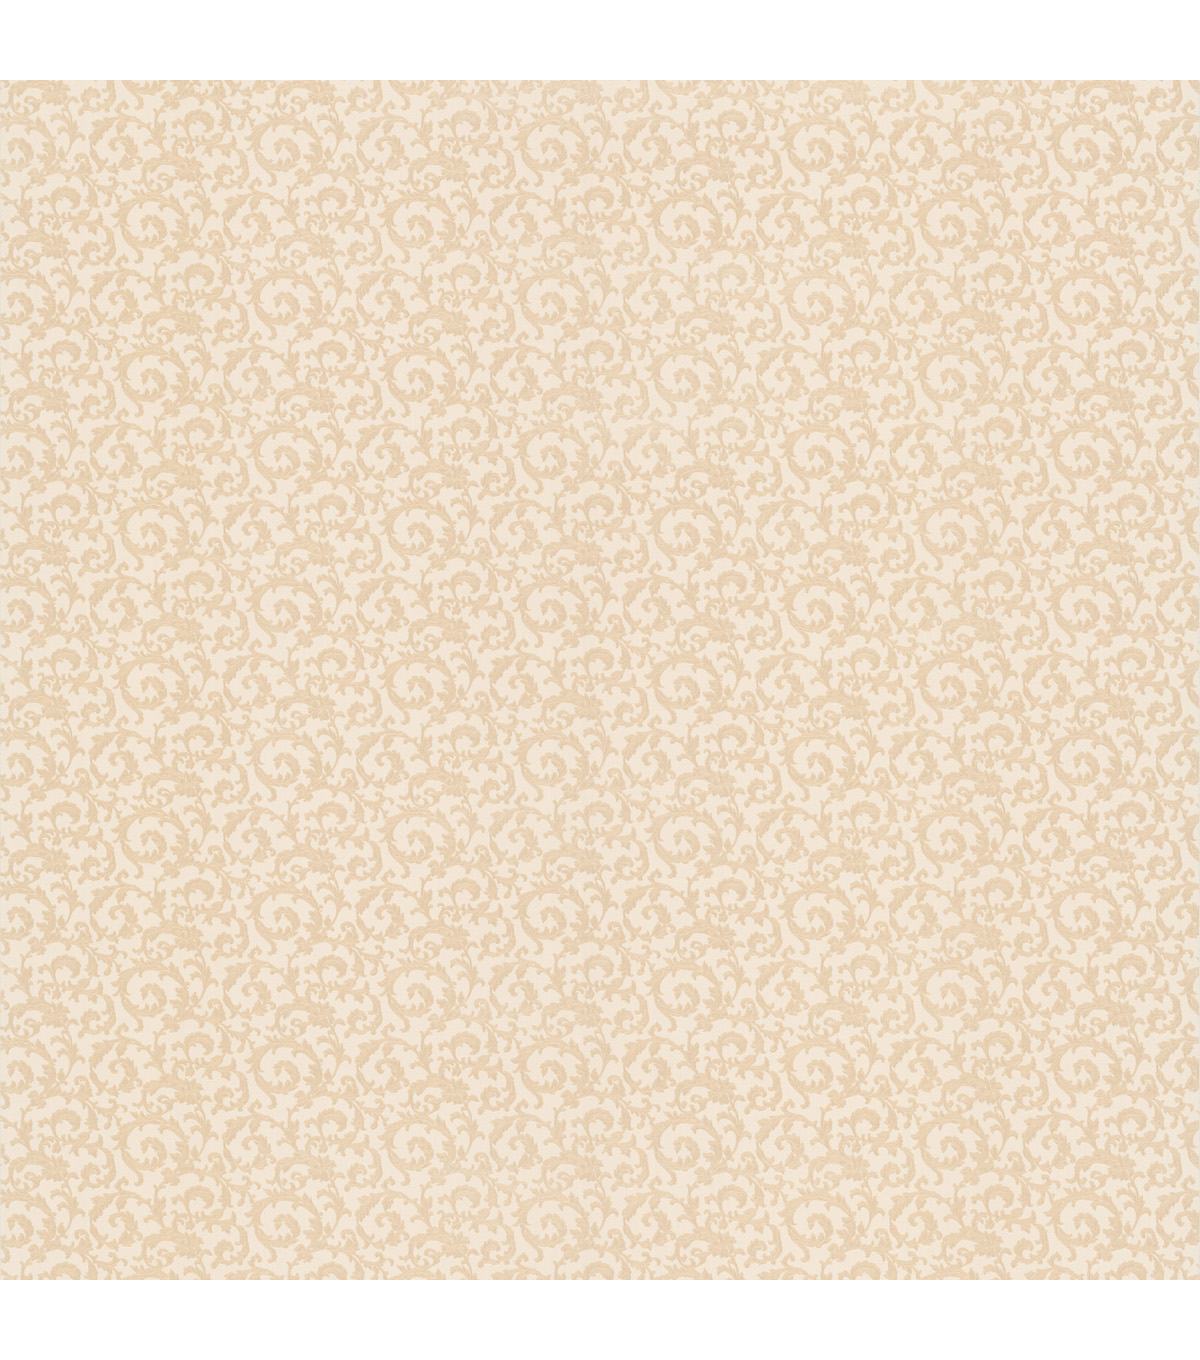 Wembley Champagne Scroll Texture Wallpaper Sample